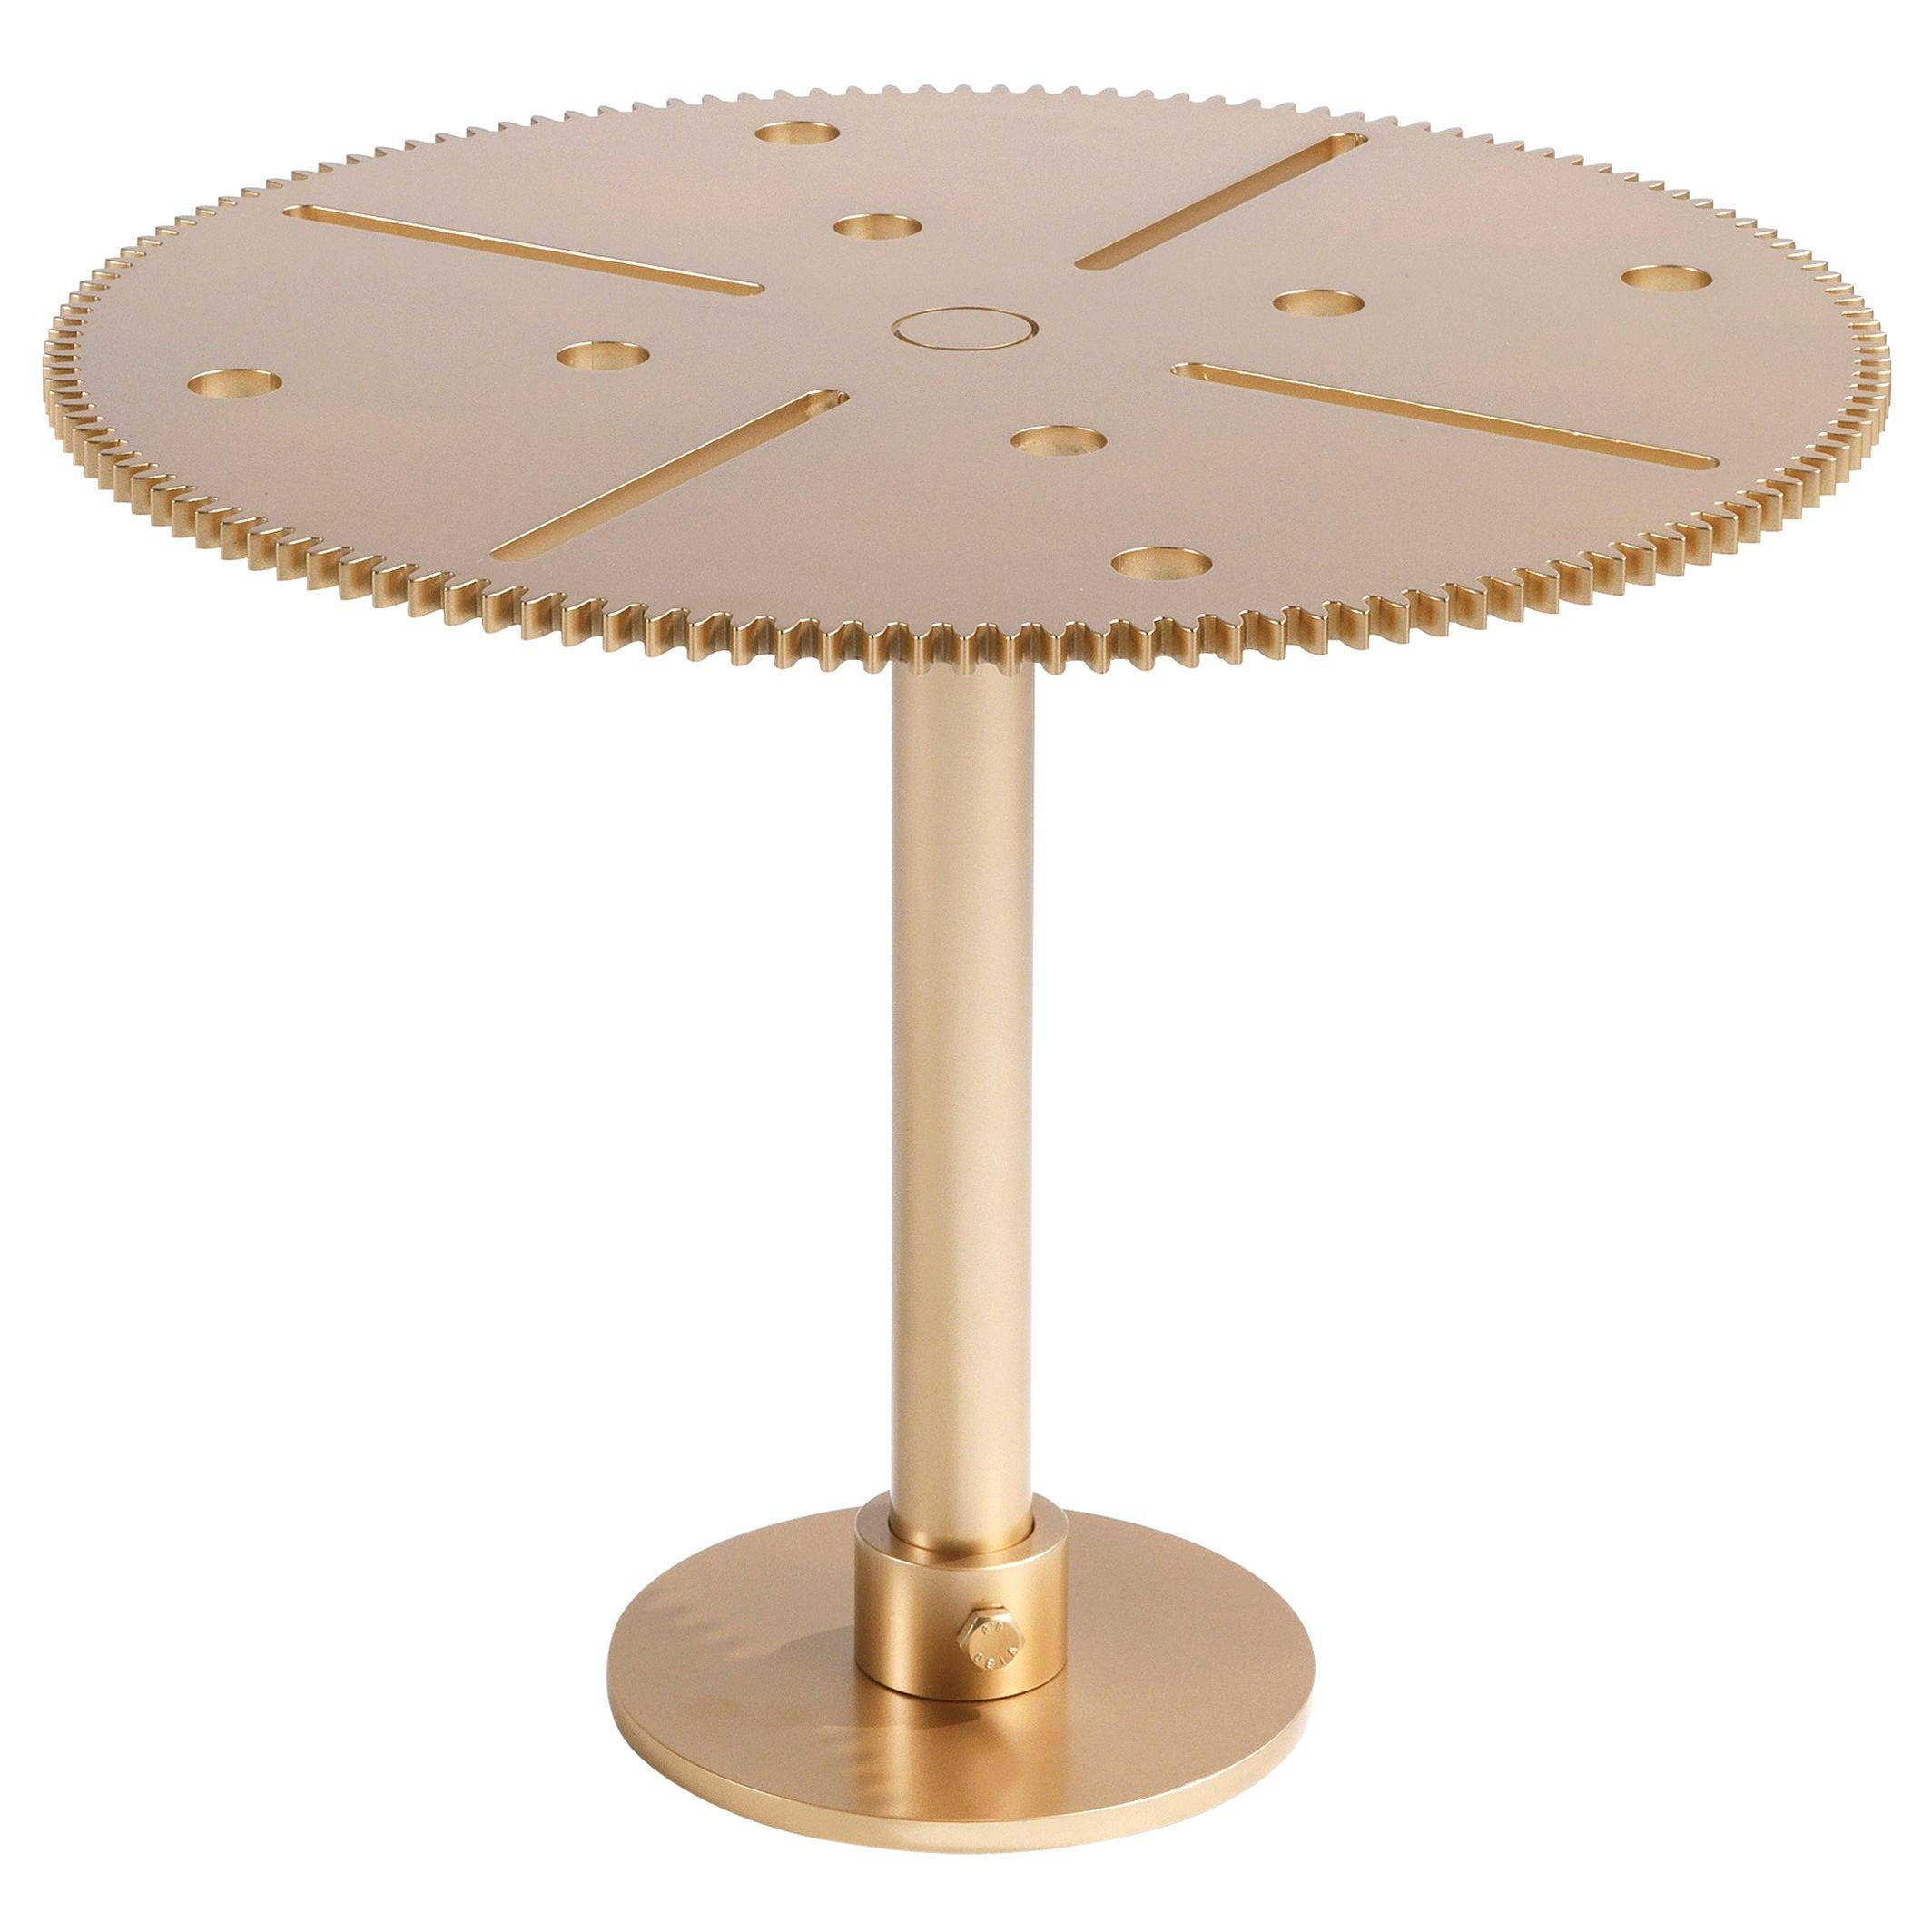 Jcp Universe Maseen A-X Sidetable by Samer Alameen